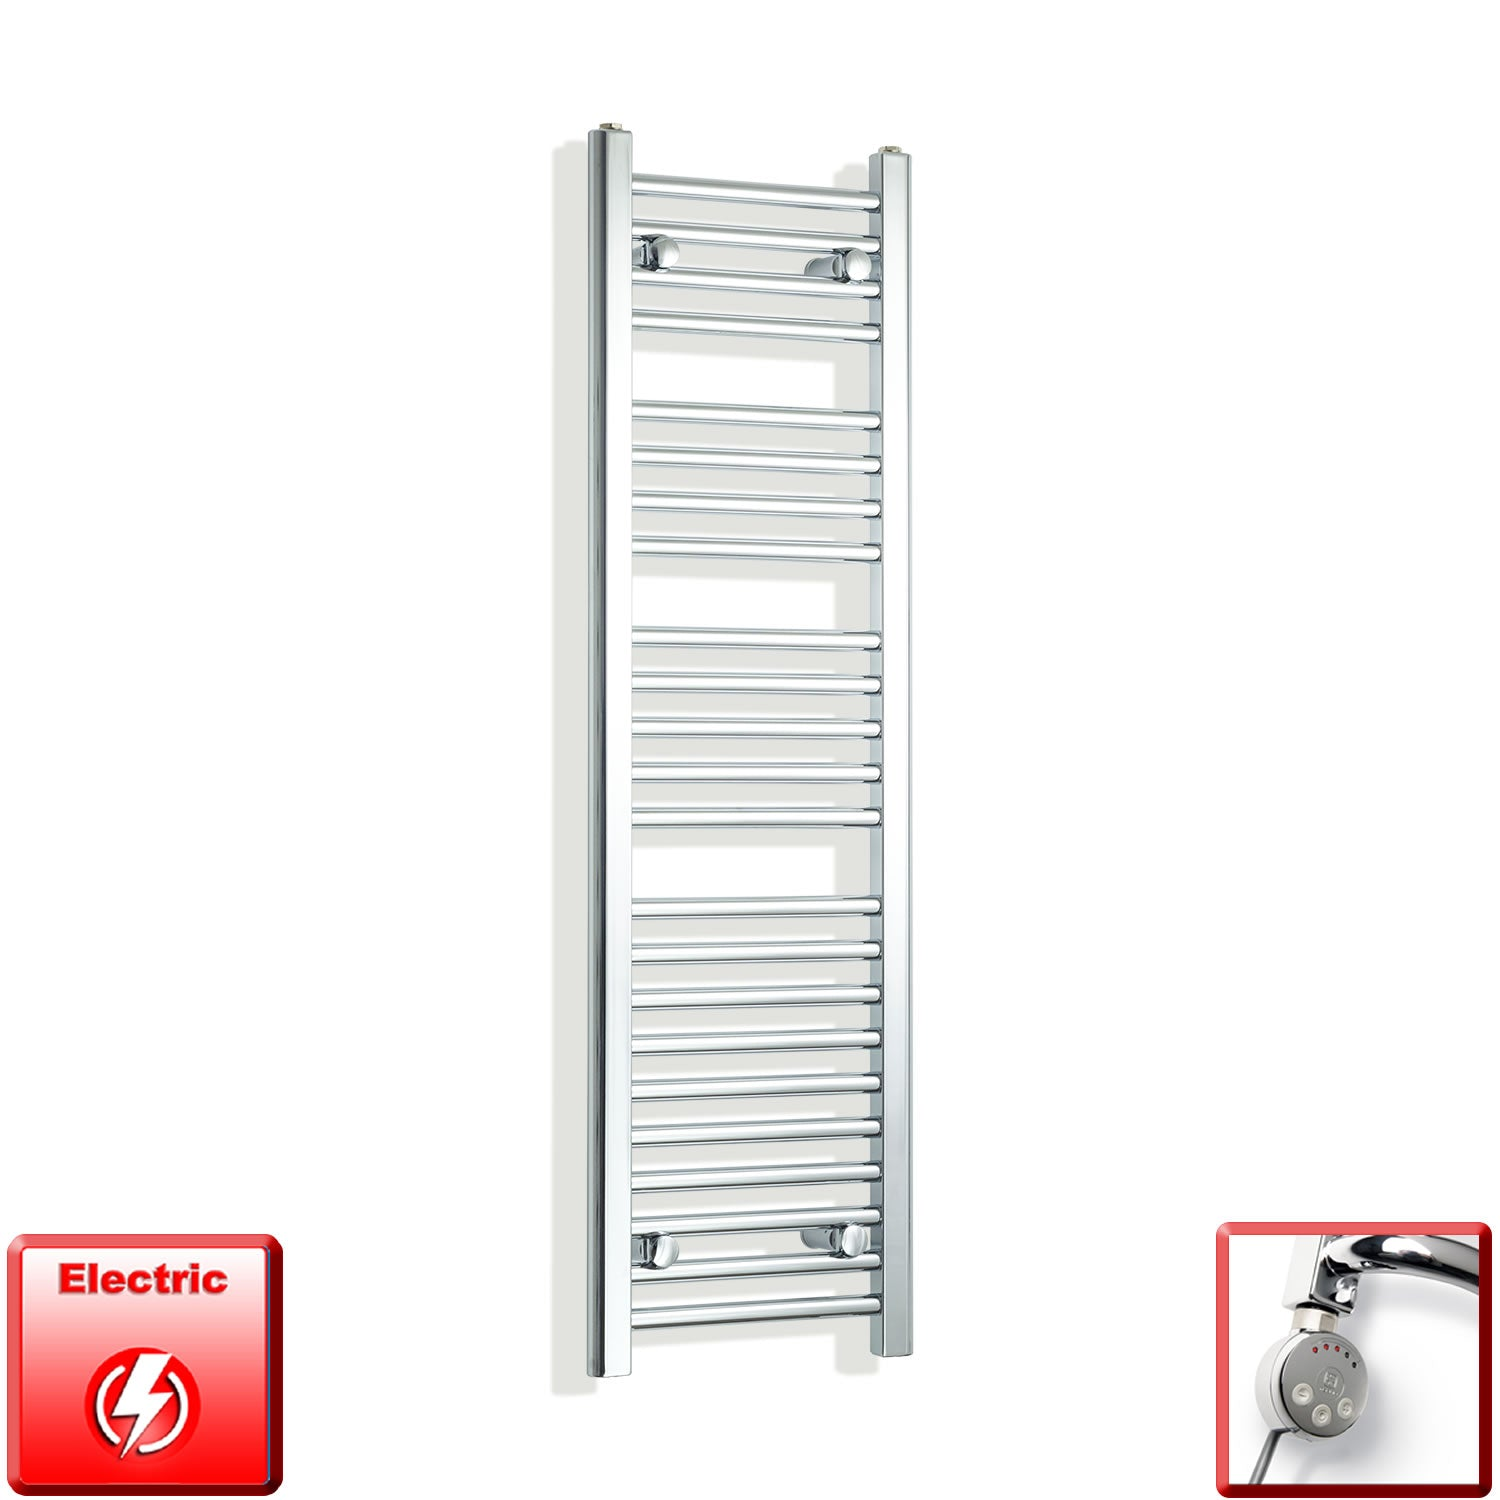 350mm Wide 1200mm High Pre-Filled Chrome Electric Towel Rail Radiator With Thermostatic MEG Element